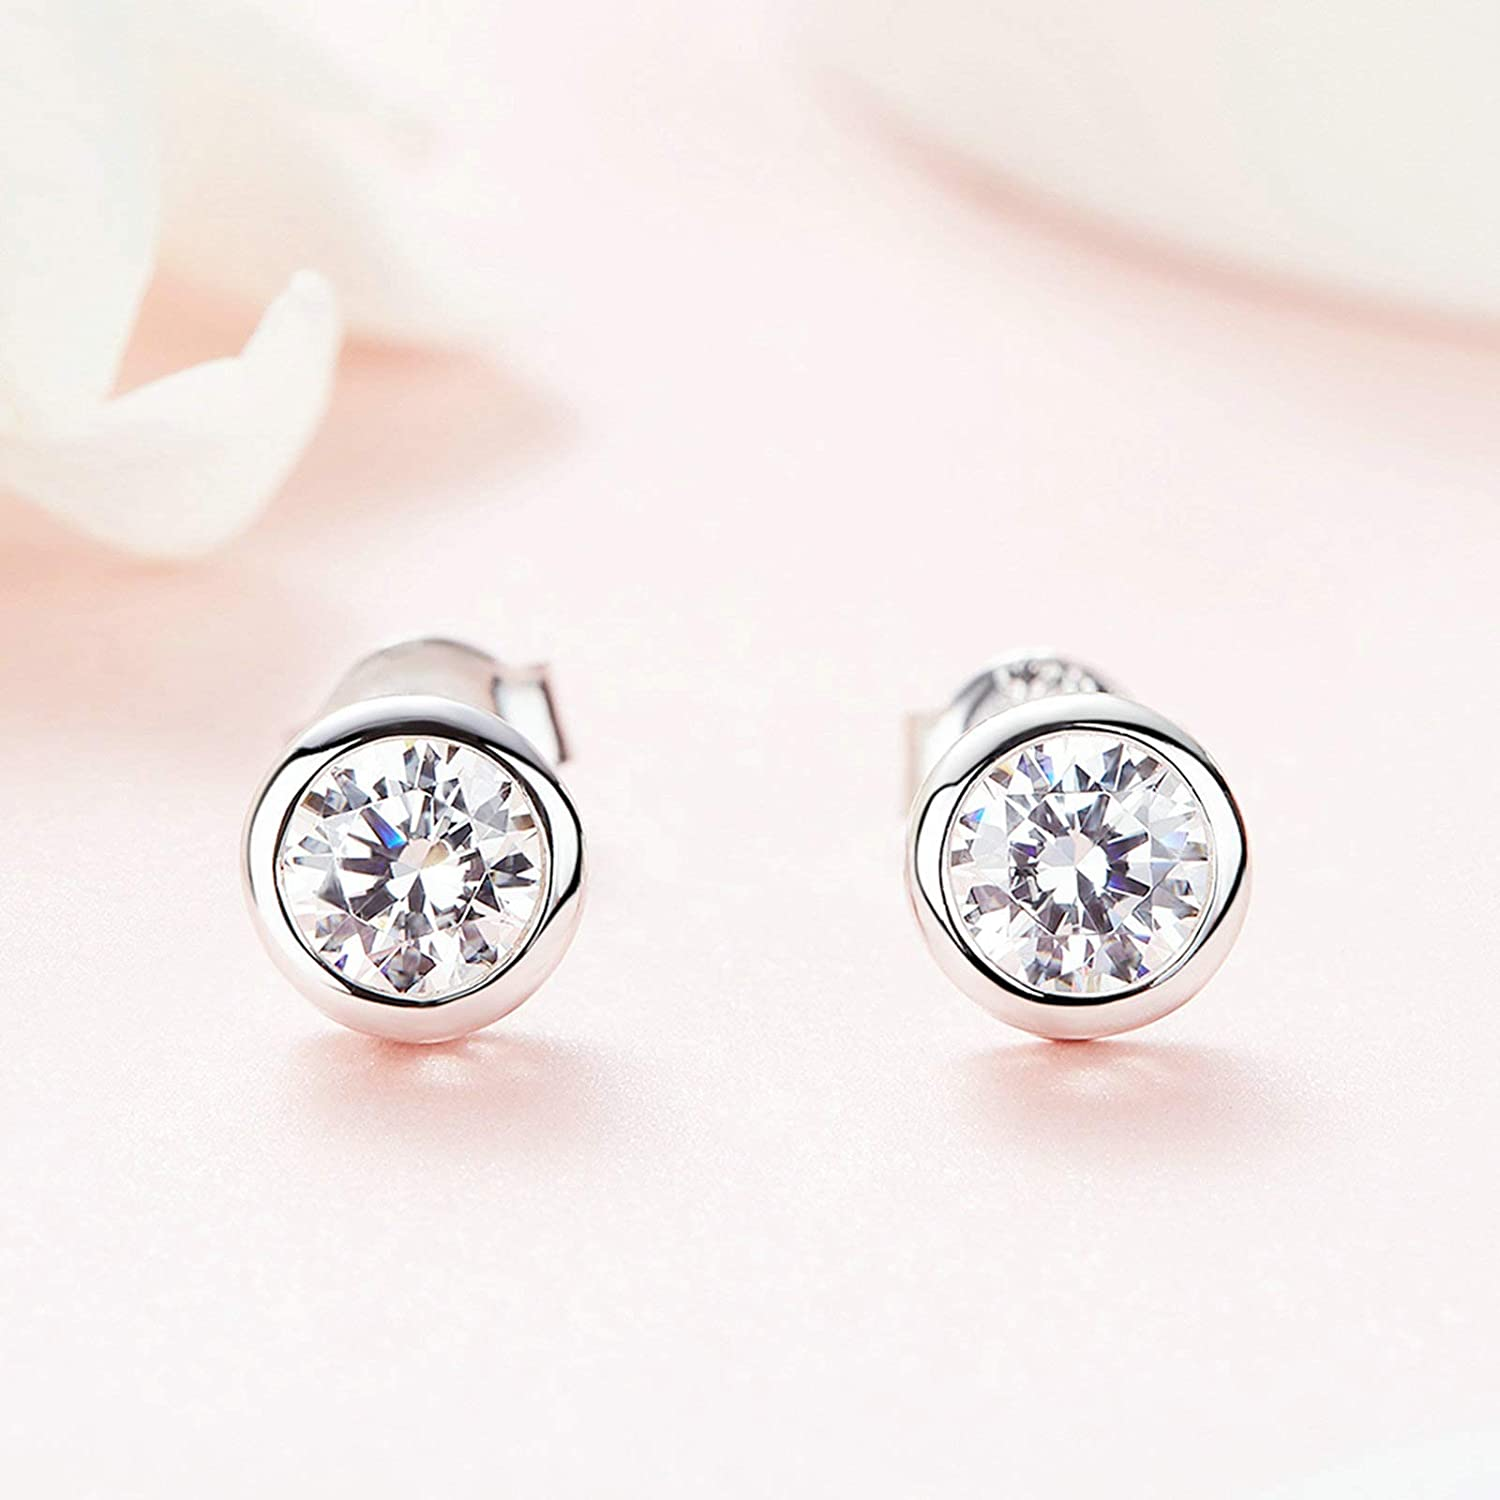 Adisaer Women Silver Plated Base Stud Earrings Silver Round Shape Cubic Zirconia Hypoallergenic Jewelry For Girl